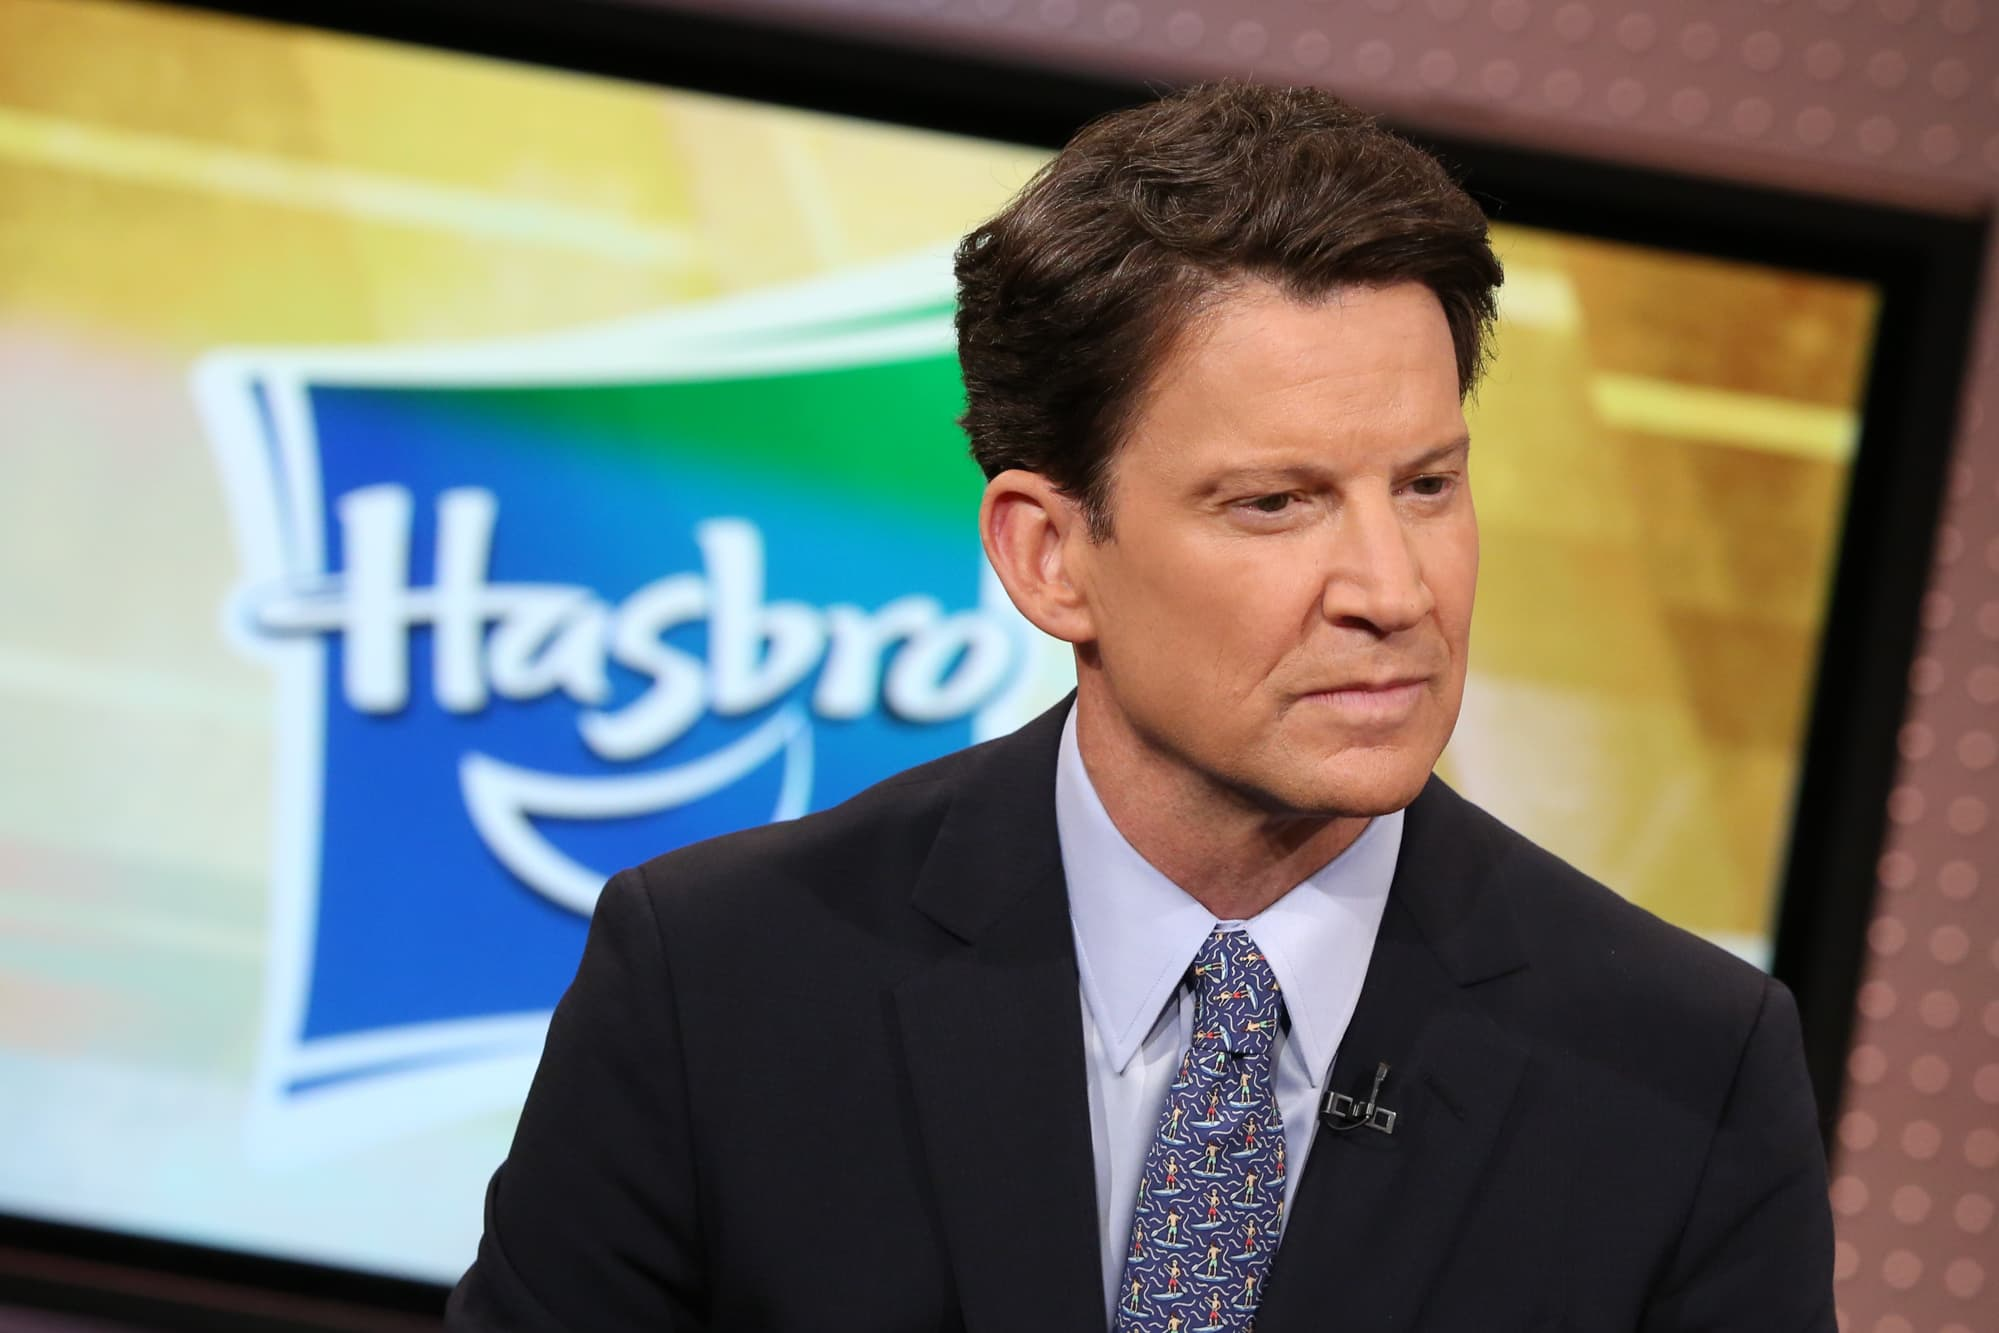 hasbro ceo brian goldner supply chain has improved and